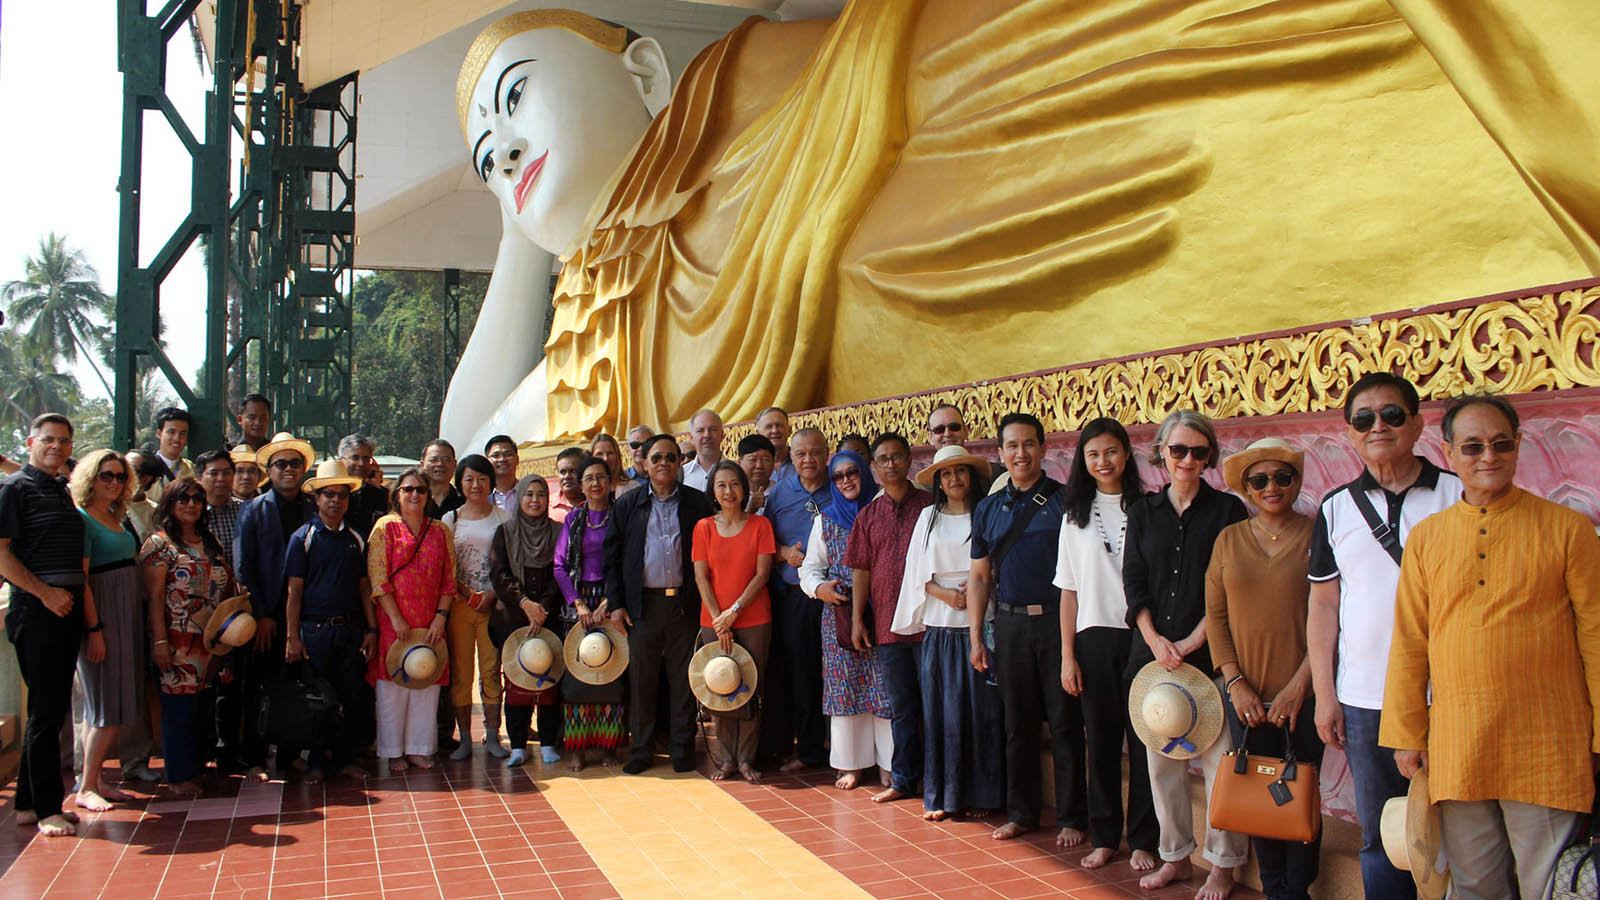 Union Minister U Kyaw Tin, diplomats and their family members pose for a group photo at the Atu Lan Thi Shwe Thar Lyaung Pagoda on Pa Htet Island. Photo: MNA